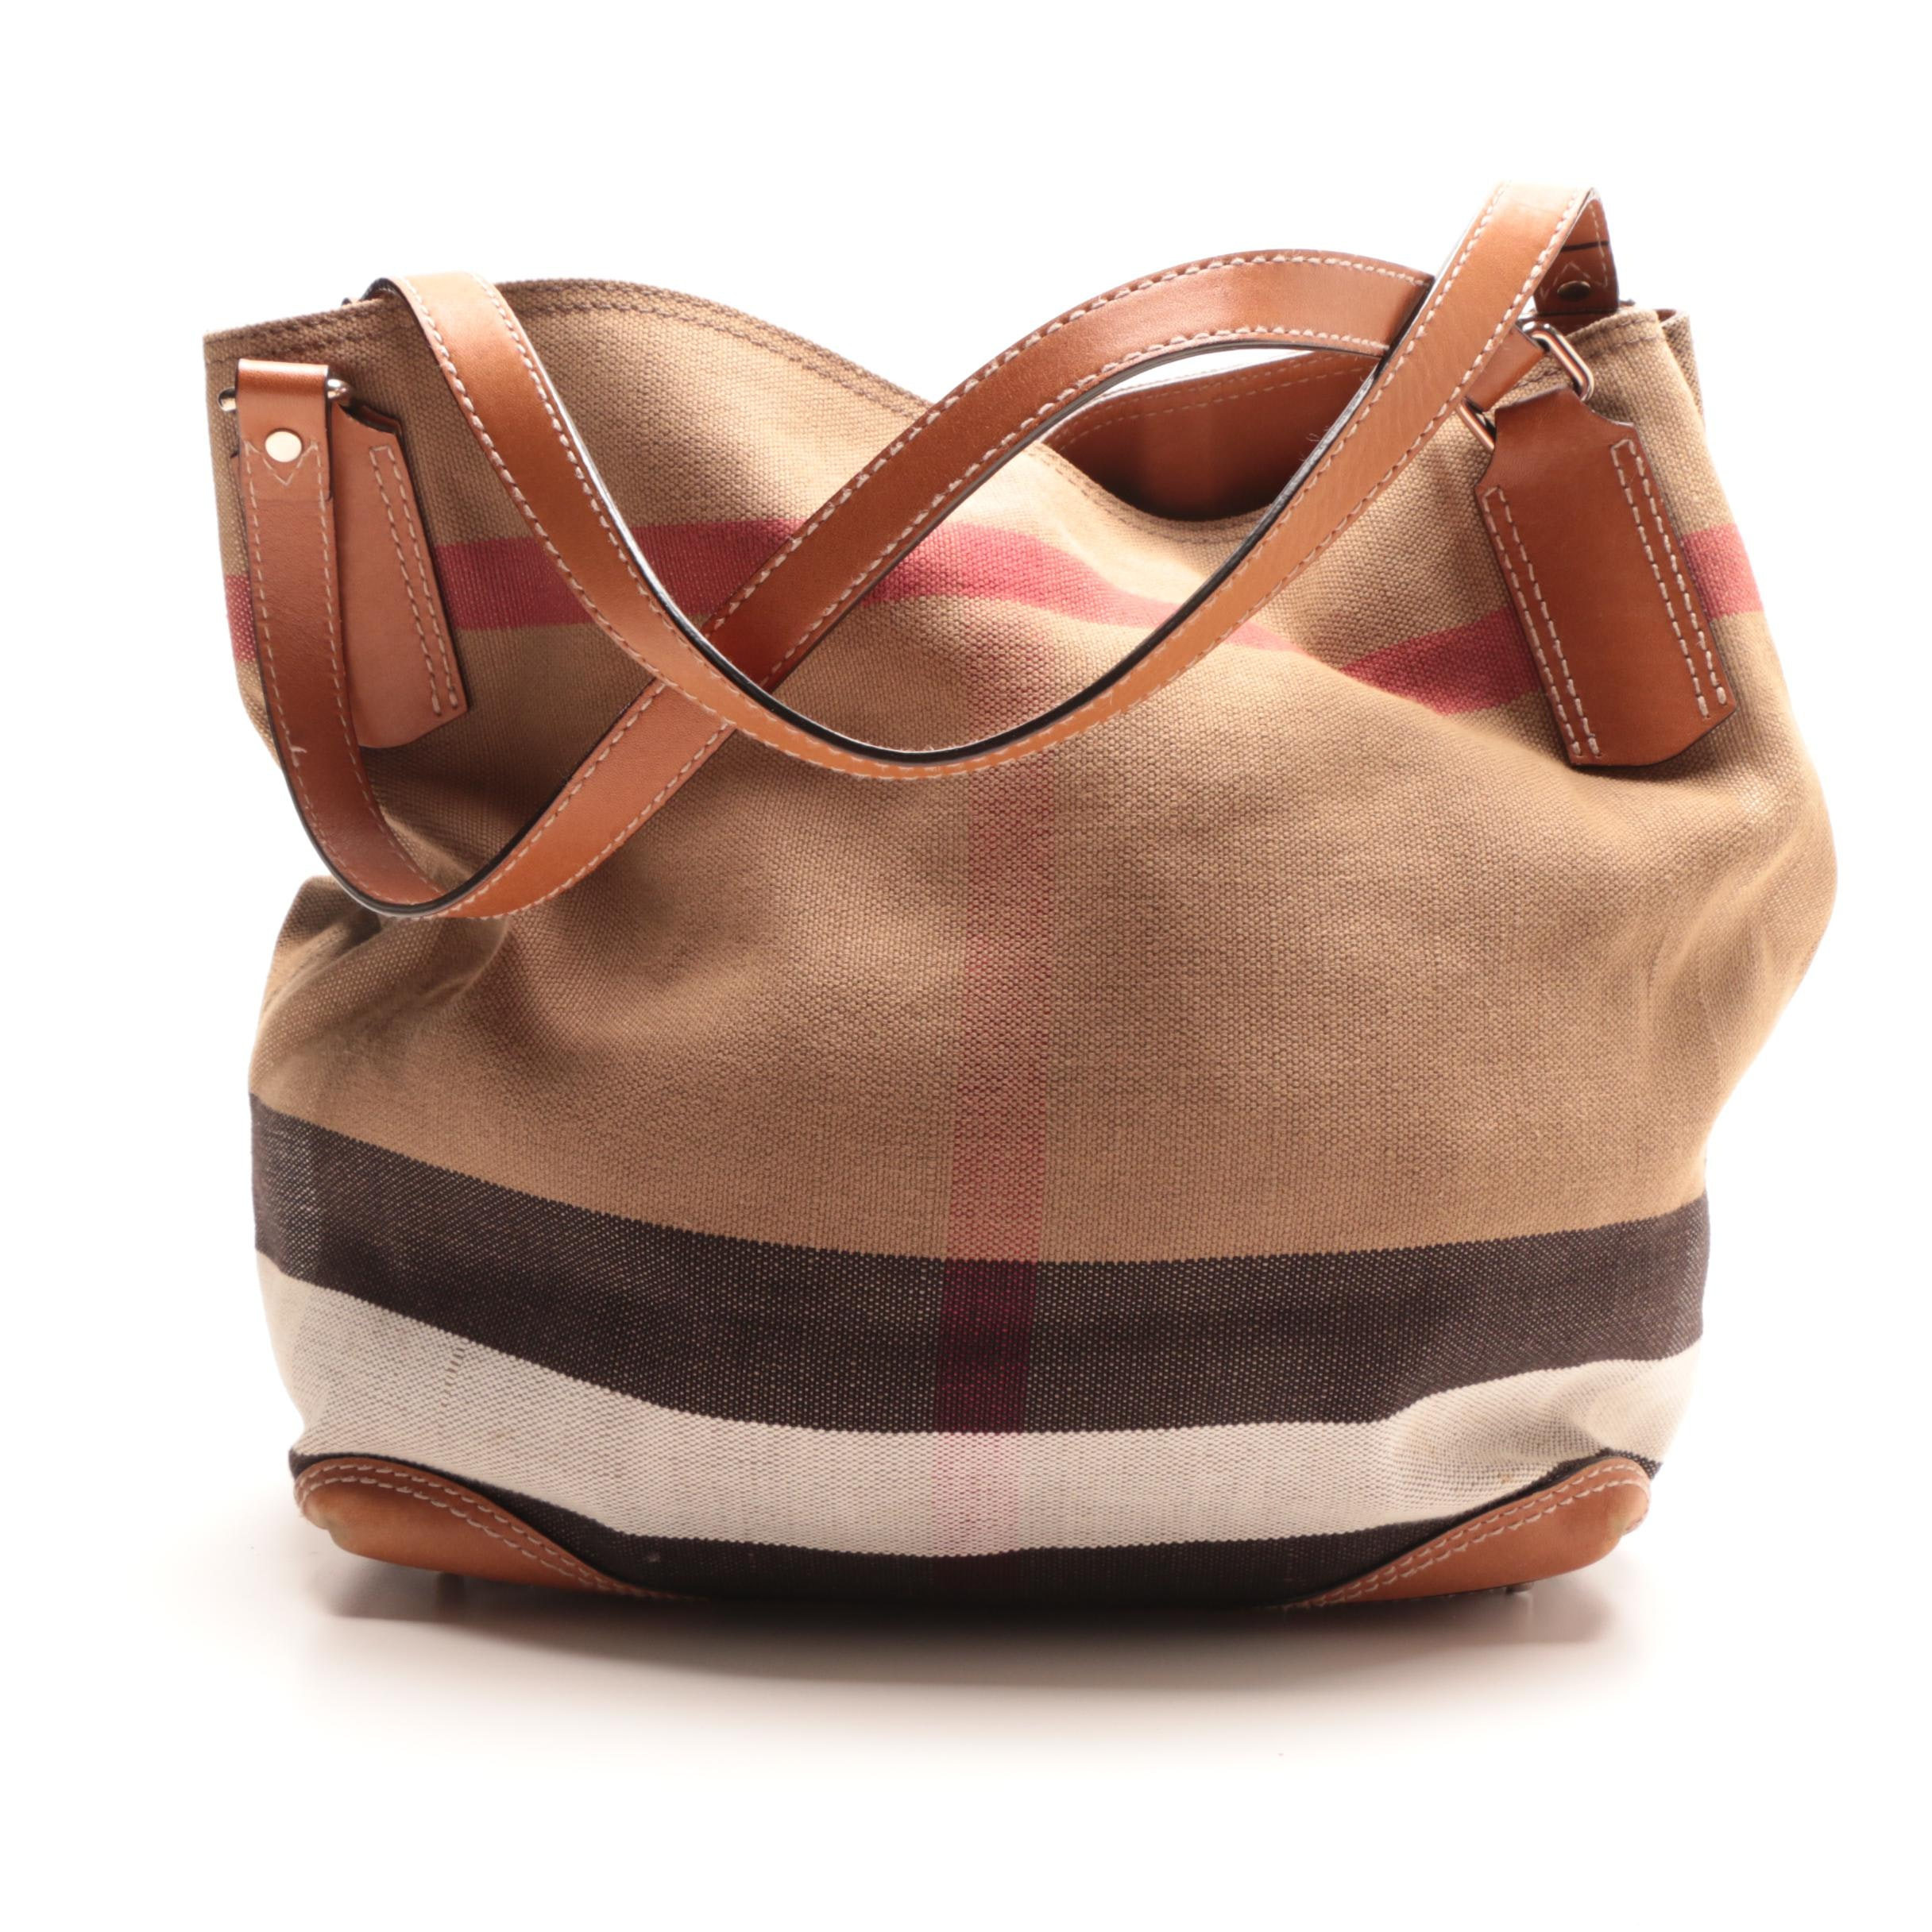 Burberry Check Canvas and Leather Tote Bag